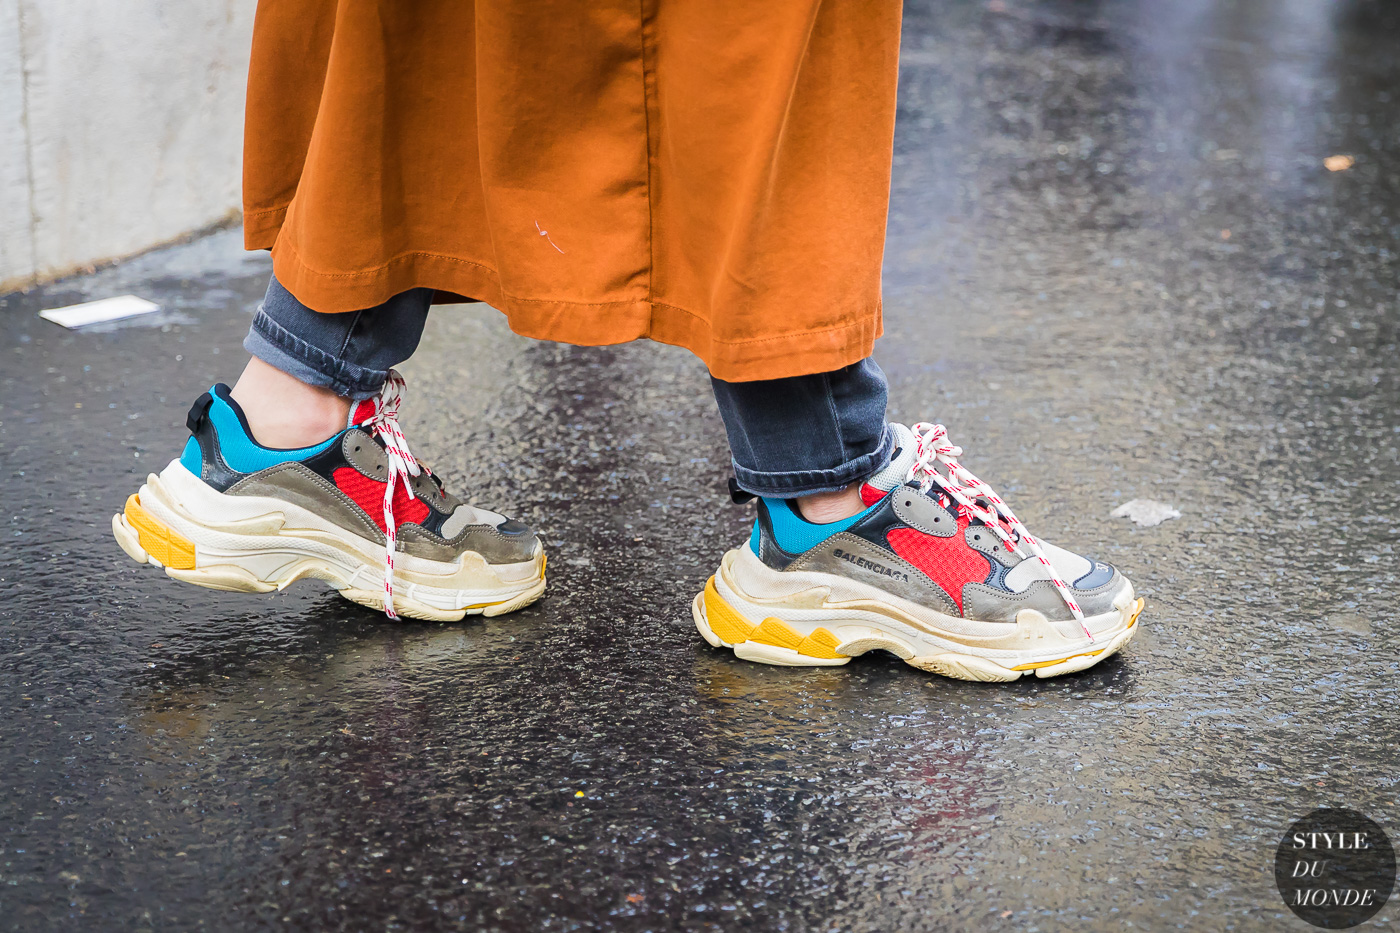 pictures Street Style Trends from Paris Fashion Week Spring 2019